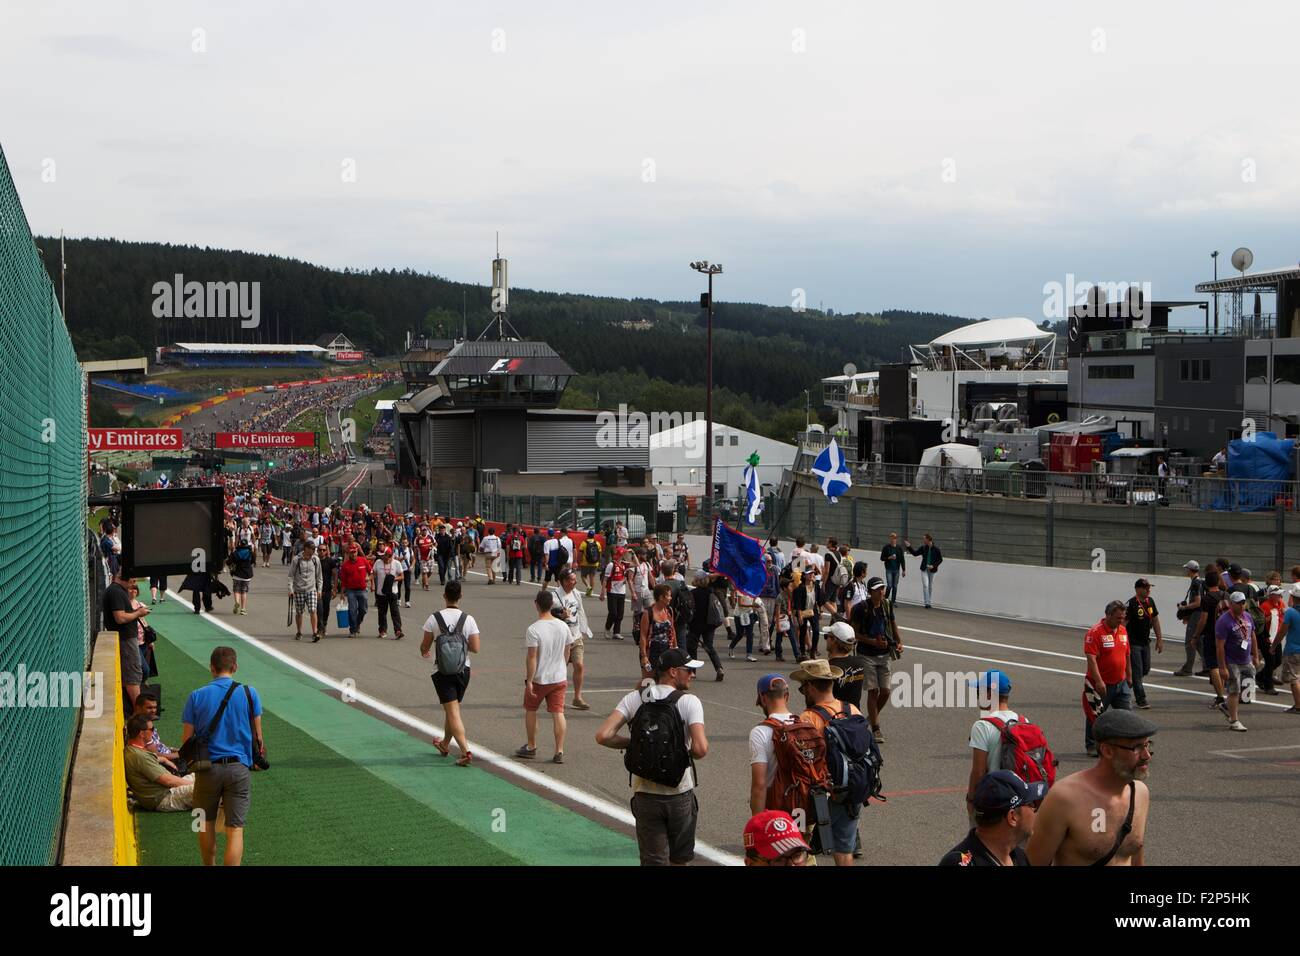 2015 Formula 1 Shell Belgian Grand Prix, Spa. - Stock Image